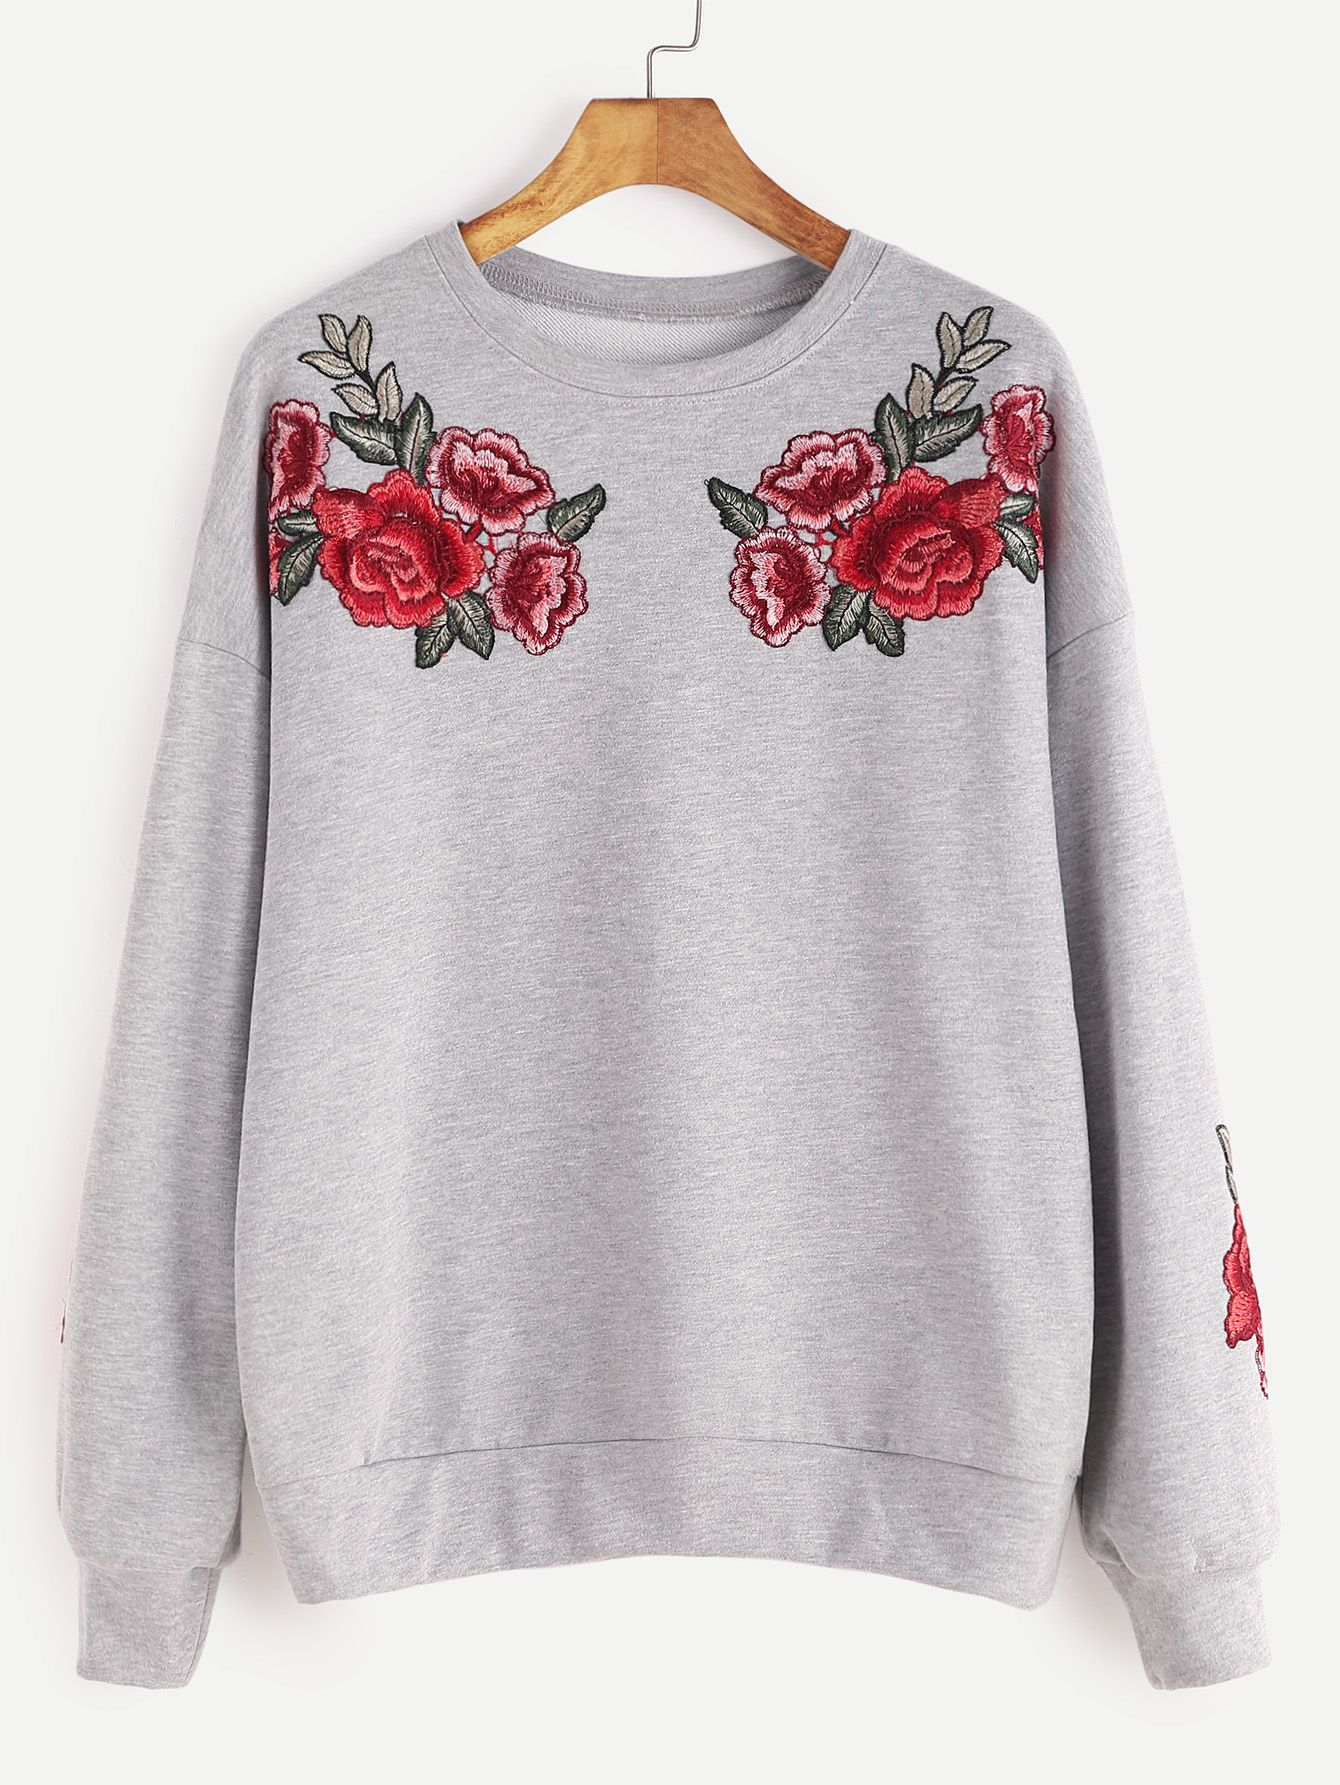 6876c483e8 Online shopping for Heather Grey Drop Shoulder Rose Embroidered Sweatshirt  from a great selection of women s fashion clothing   more at MakeMeChic.COM.